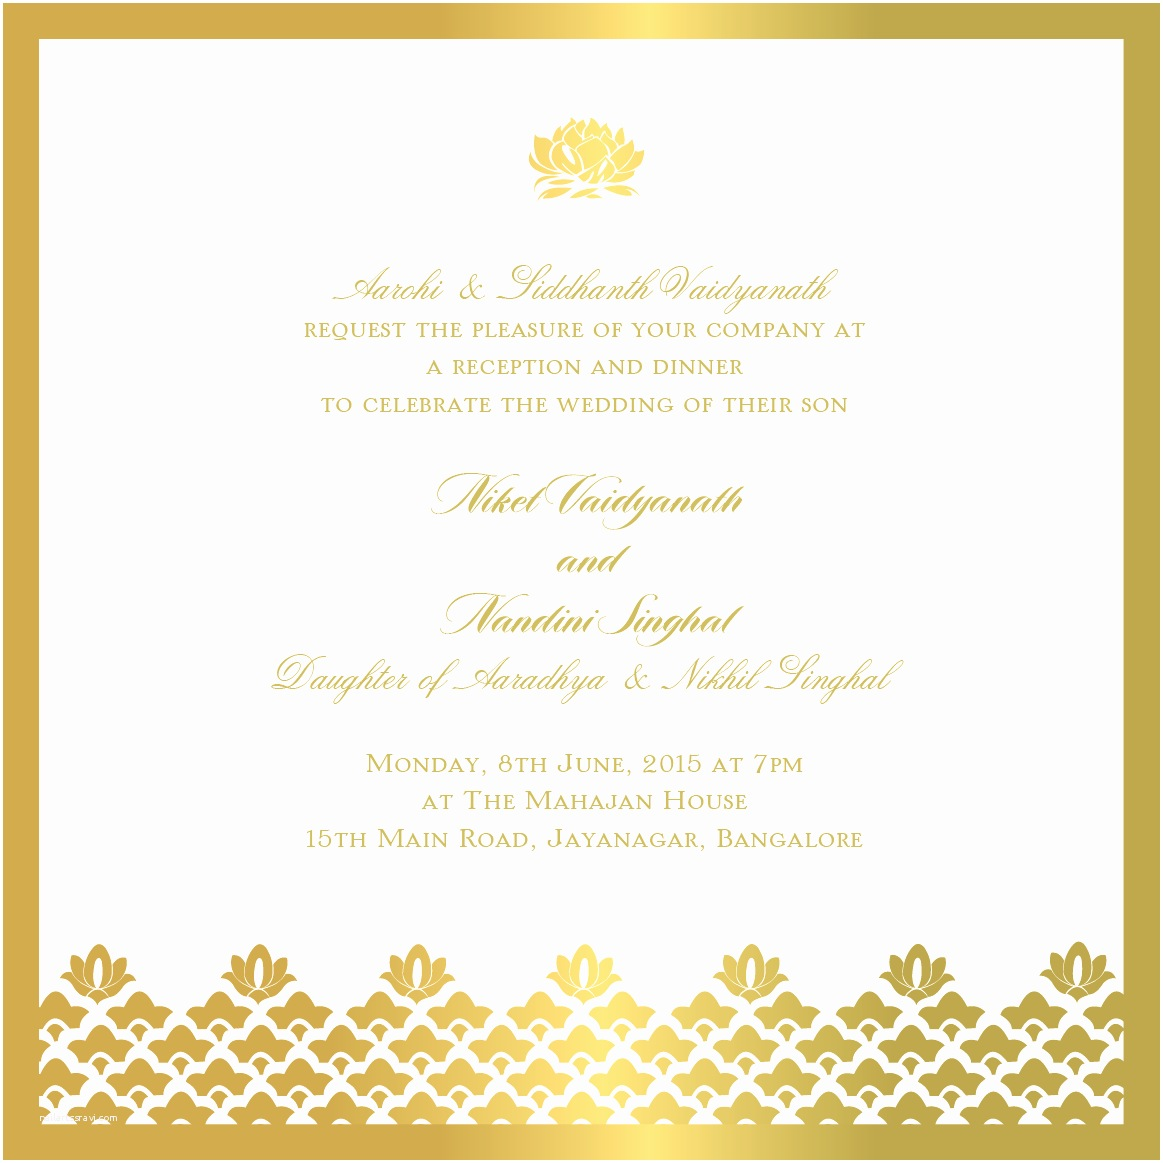 Indian Wedding Reception Invitation Templates Elegant Gold Border and Motifs On Indian Reception